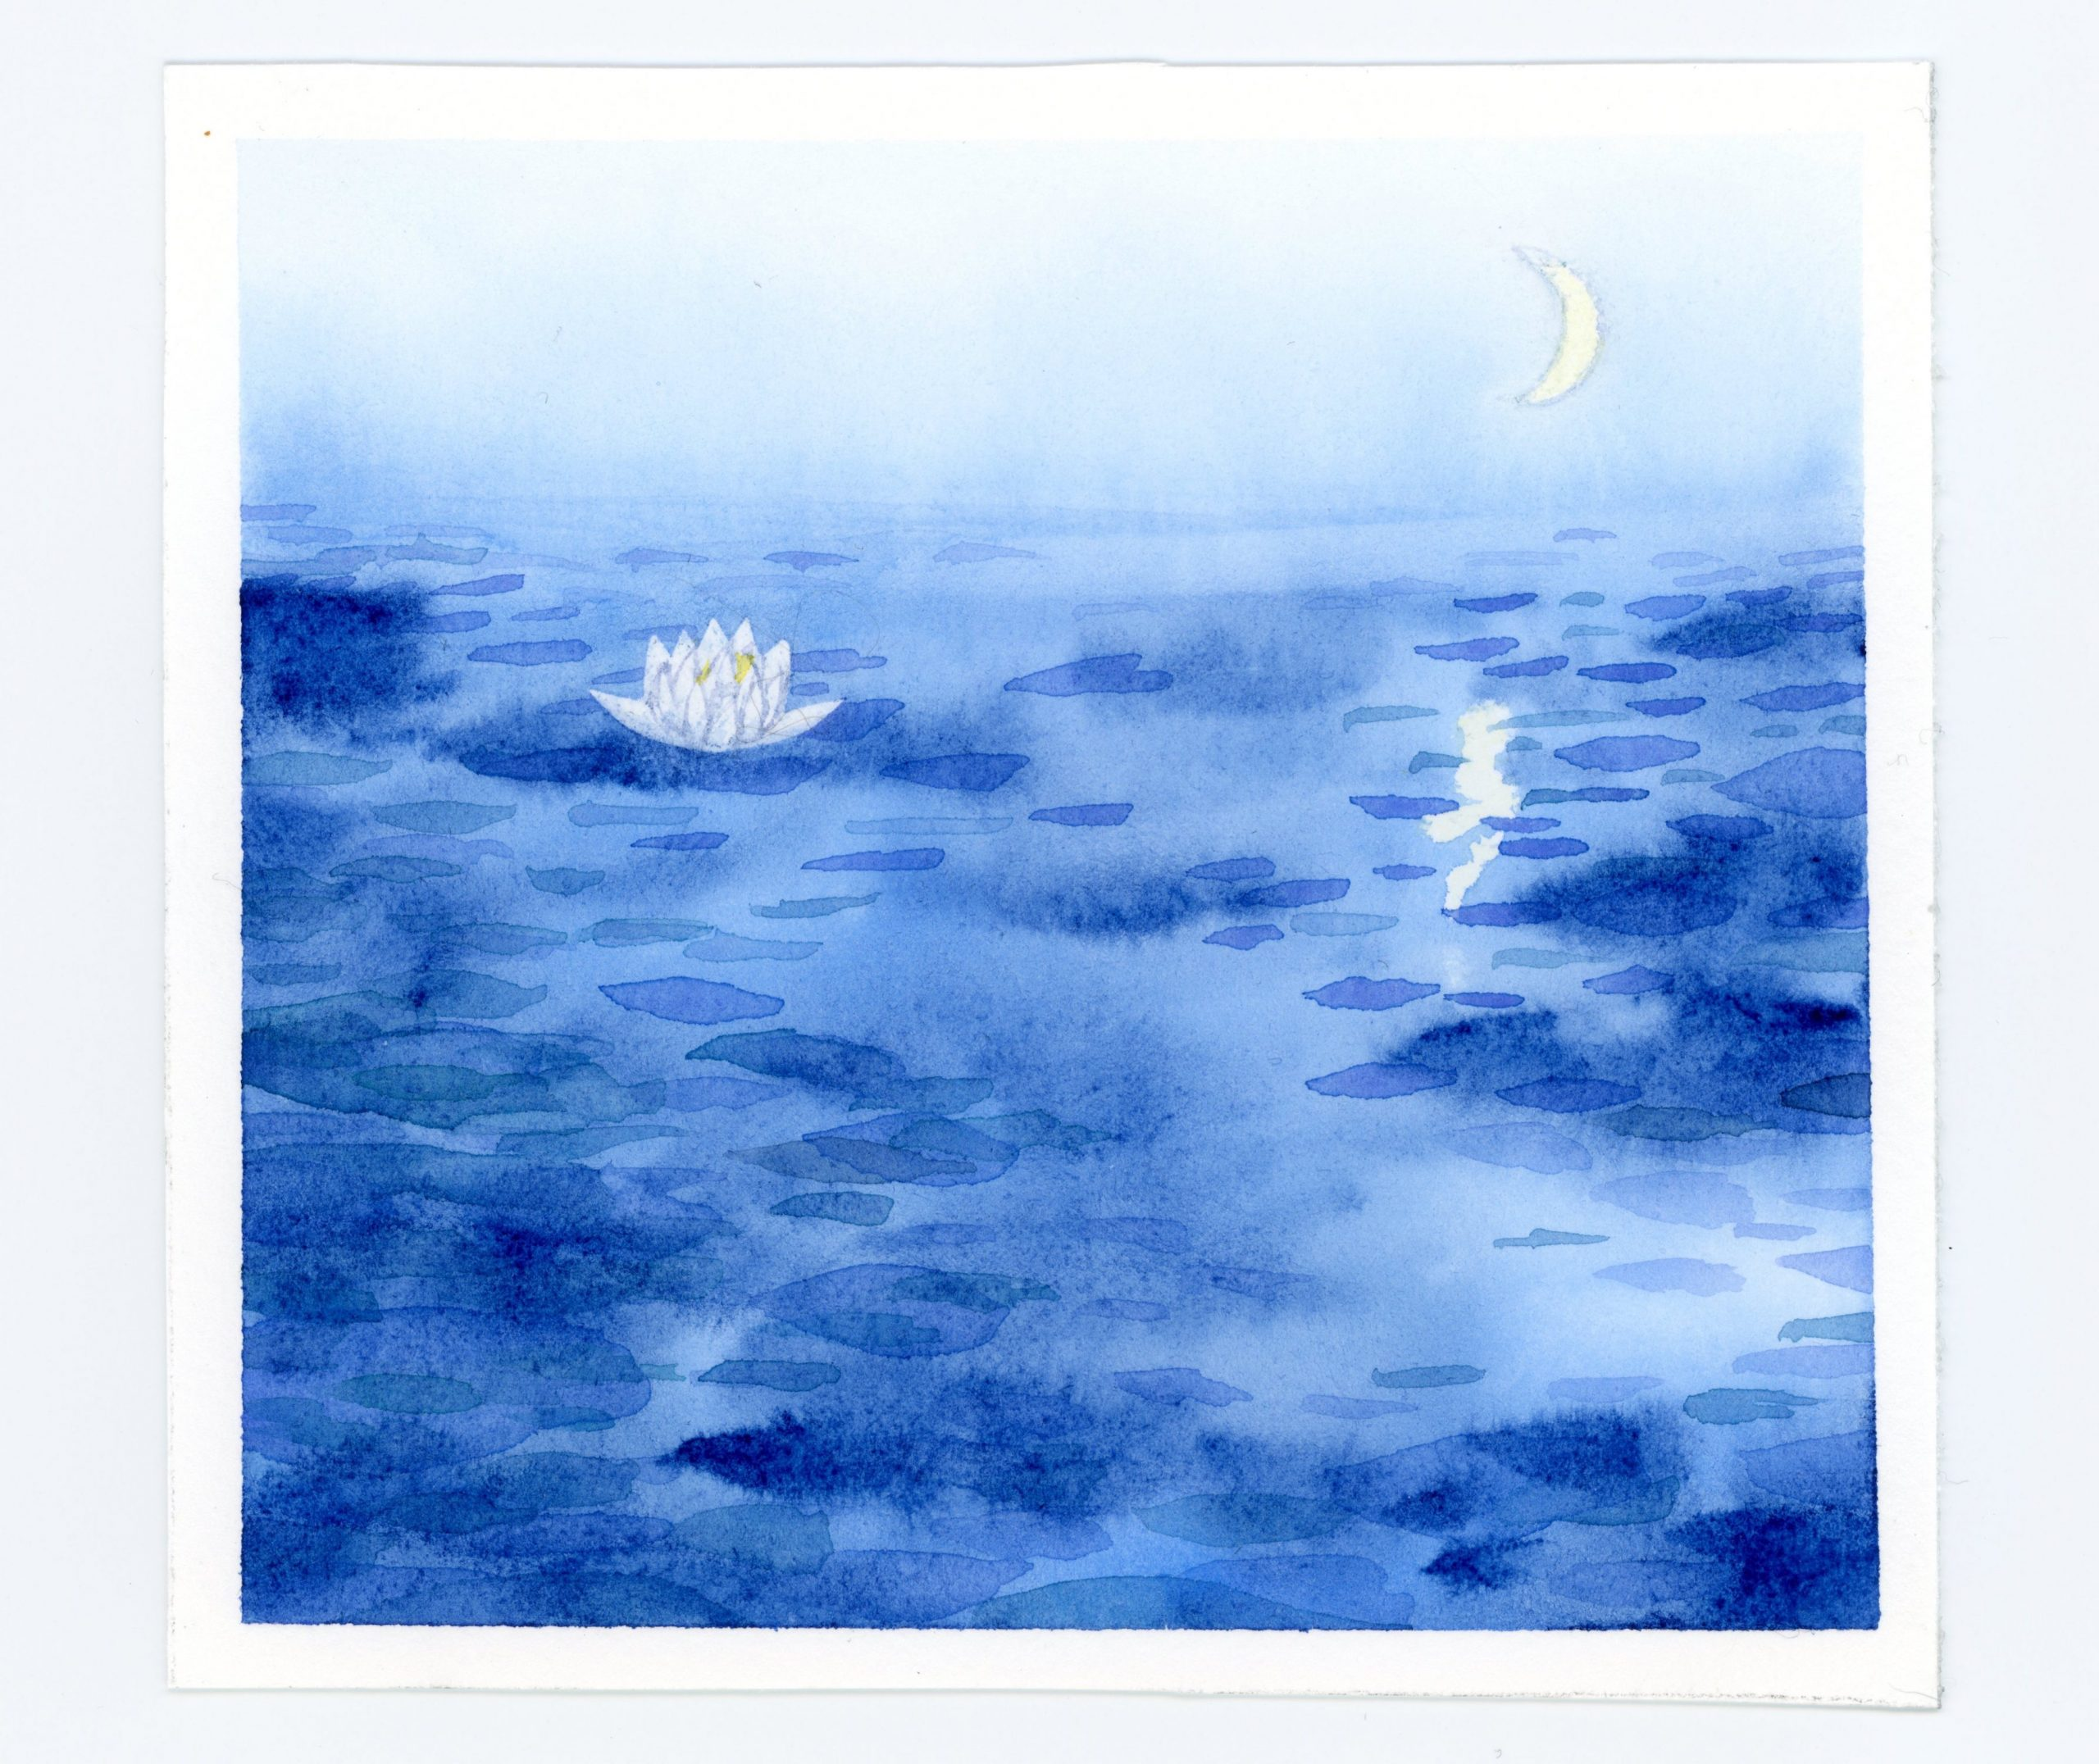 waterlily at night watercolor illustration